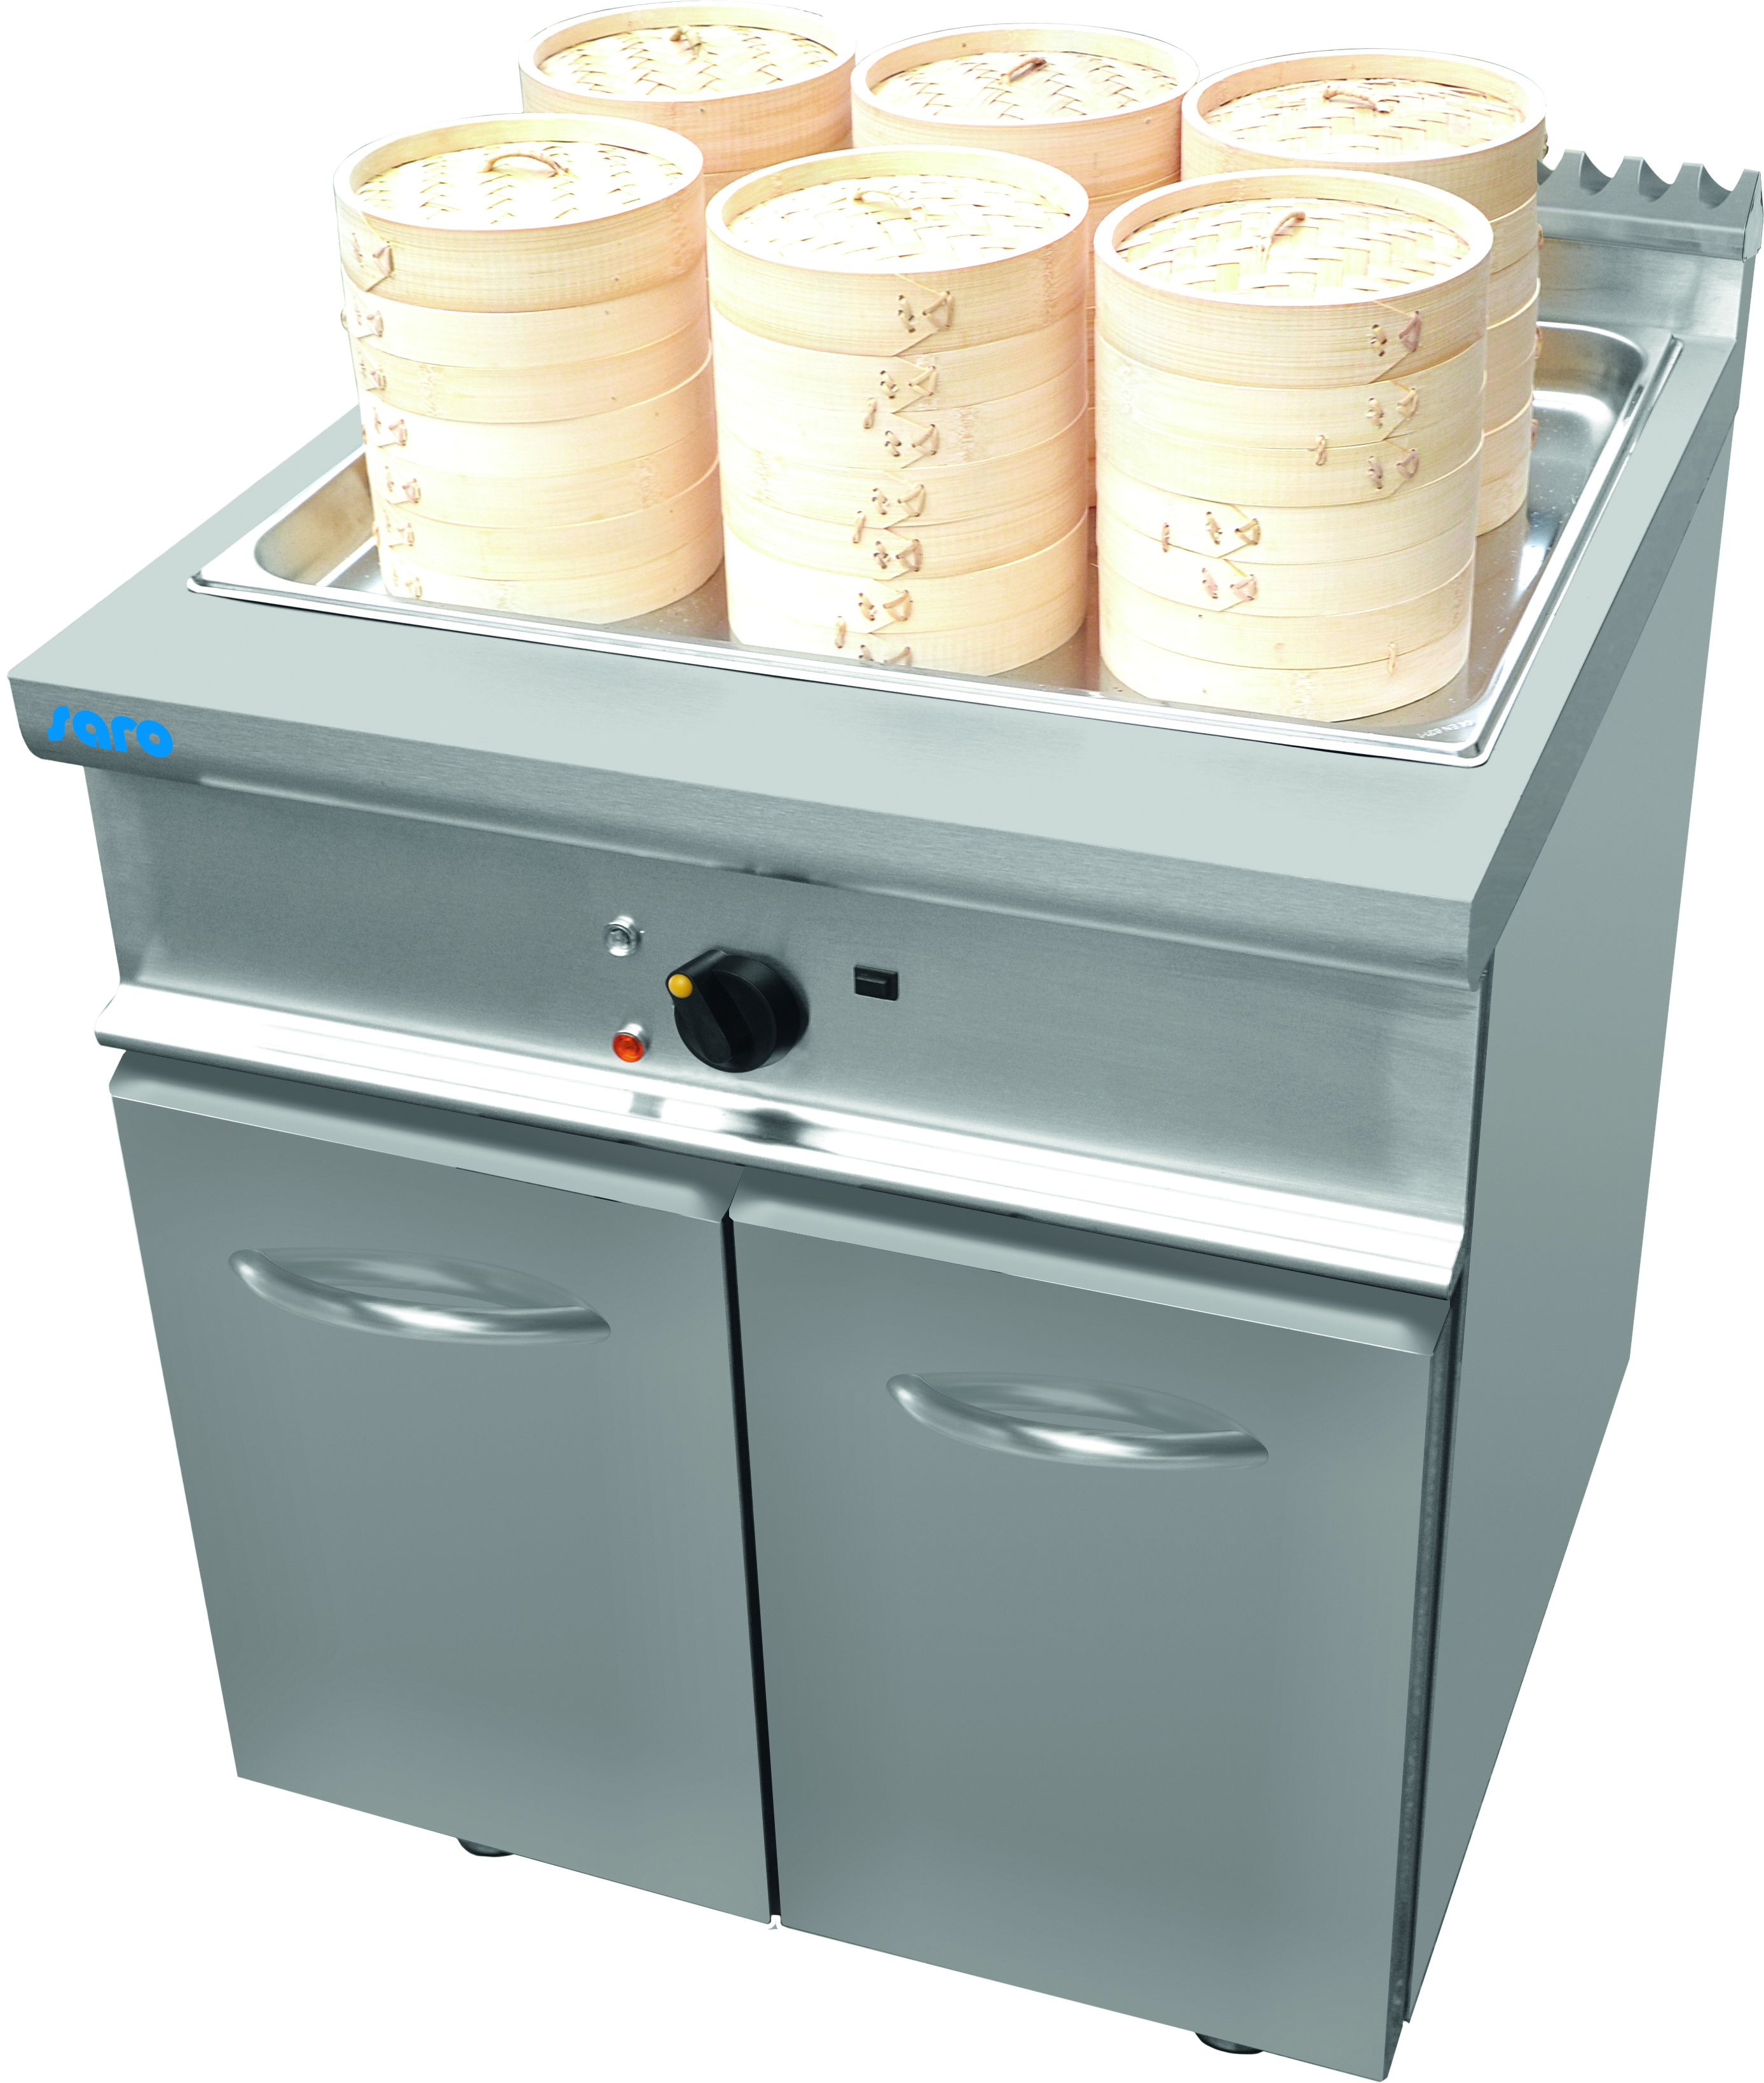 Dim Sum Steamer with cabinet Model L7/DSE400BC | Saro